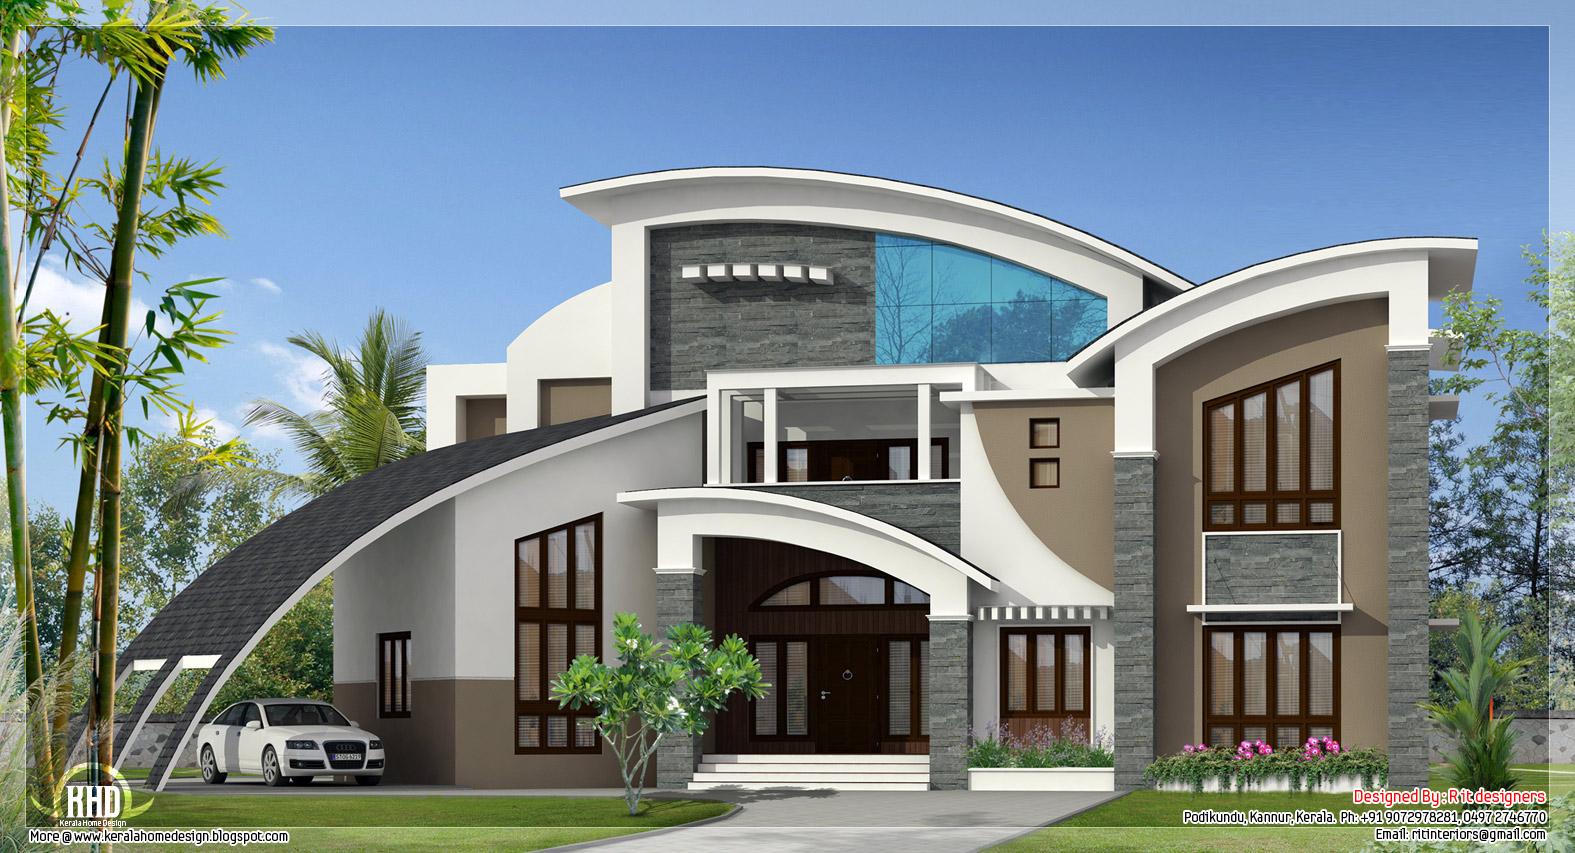 4 bedroom modern flat roof house keralahousedesigns